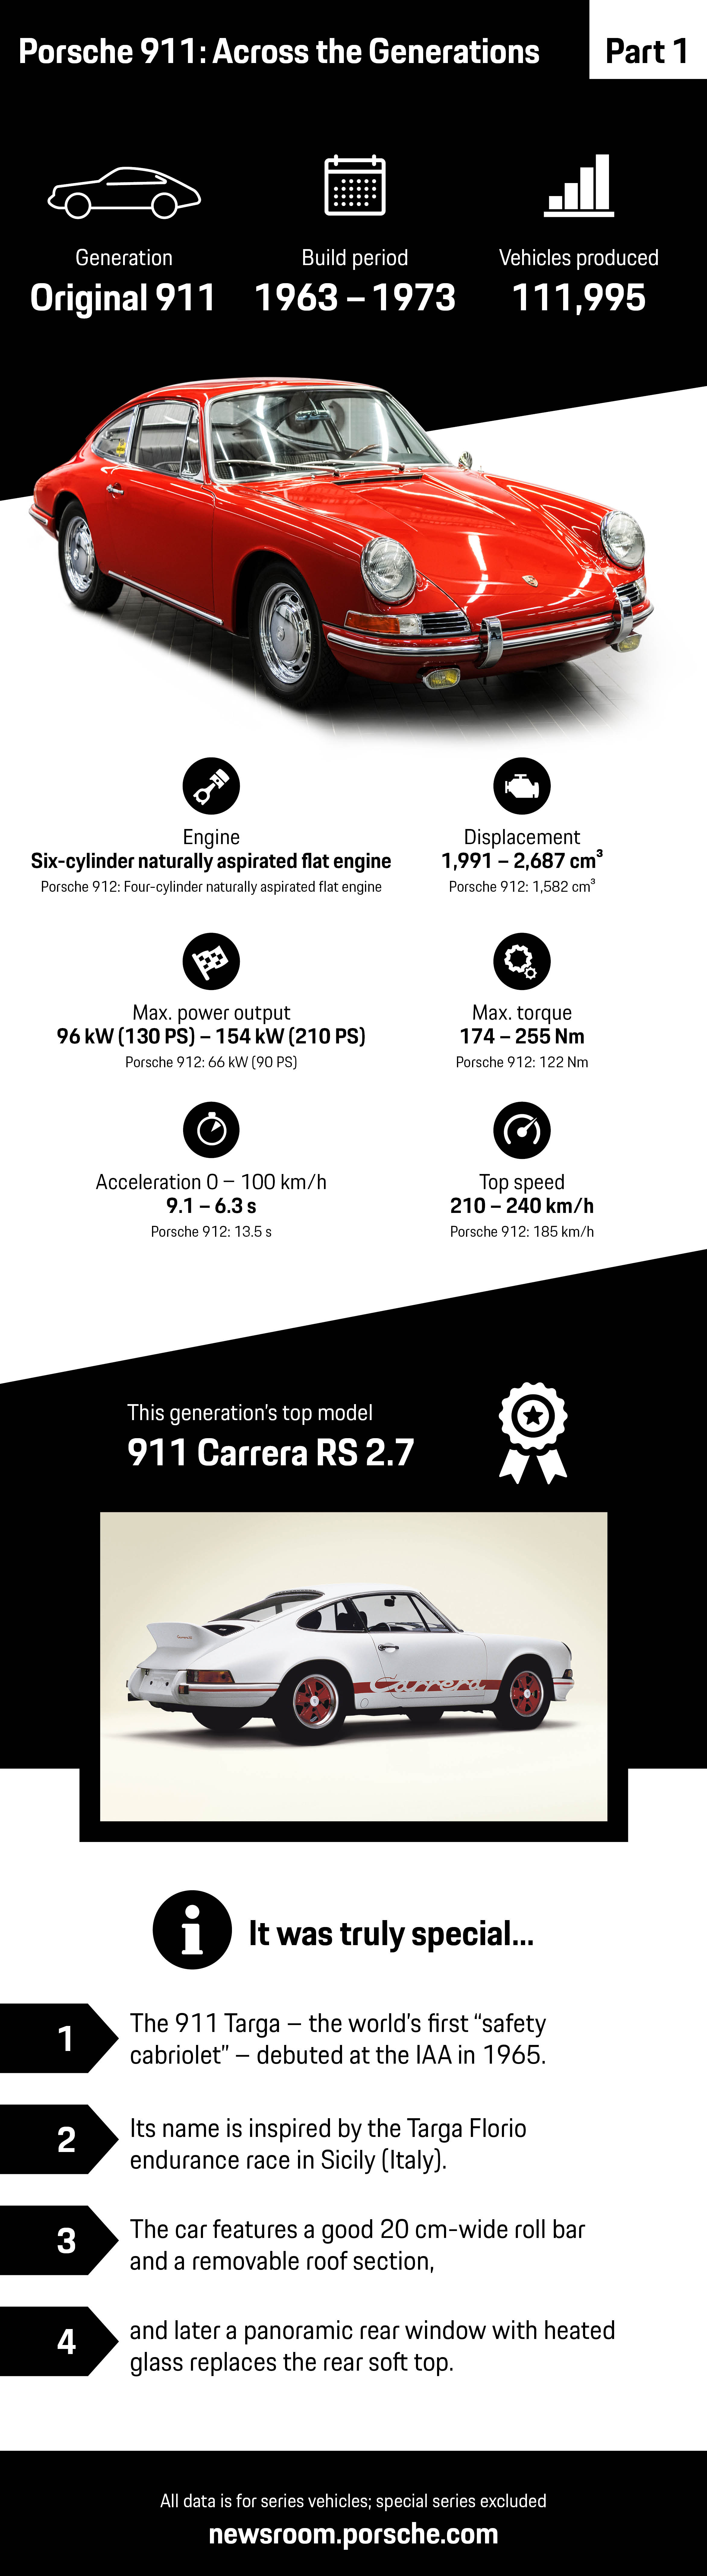 Porsche 911: Across the Generations – part 1, infographic, 2018, Porsche AG